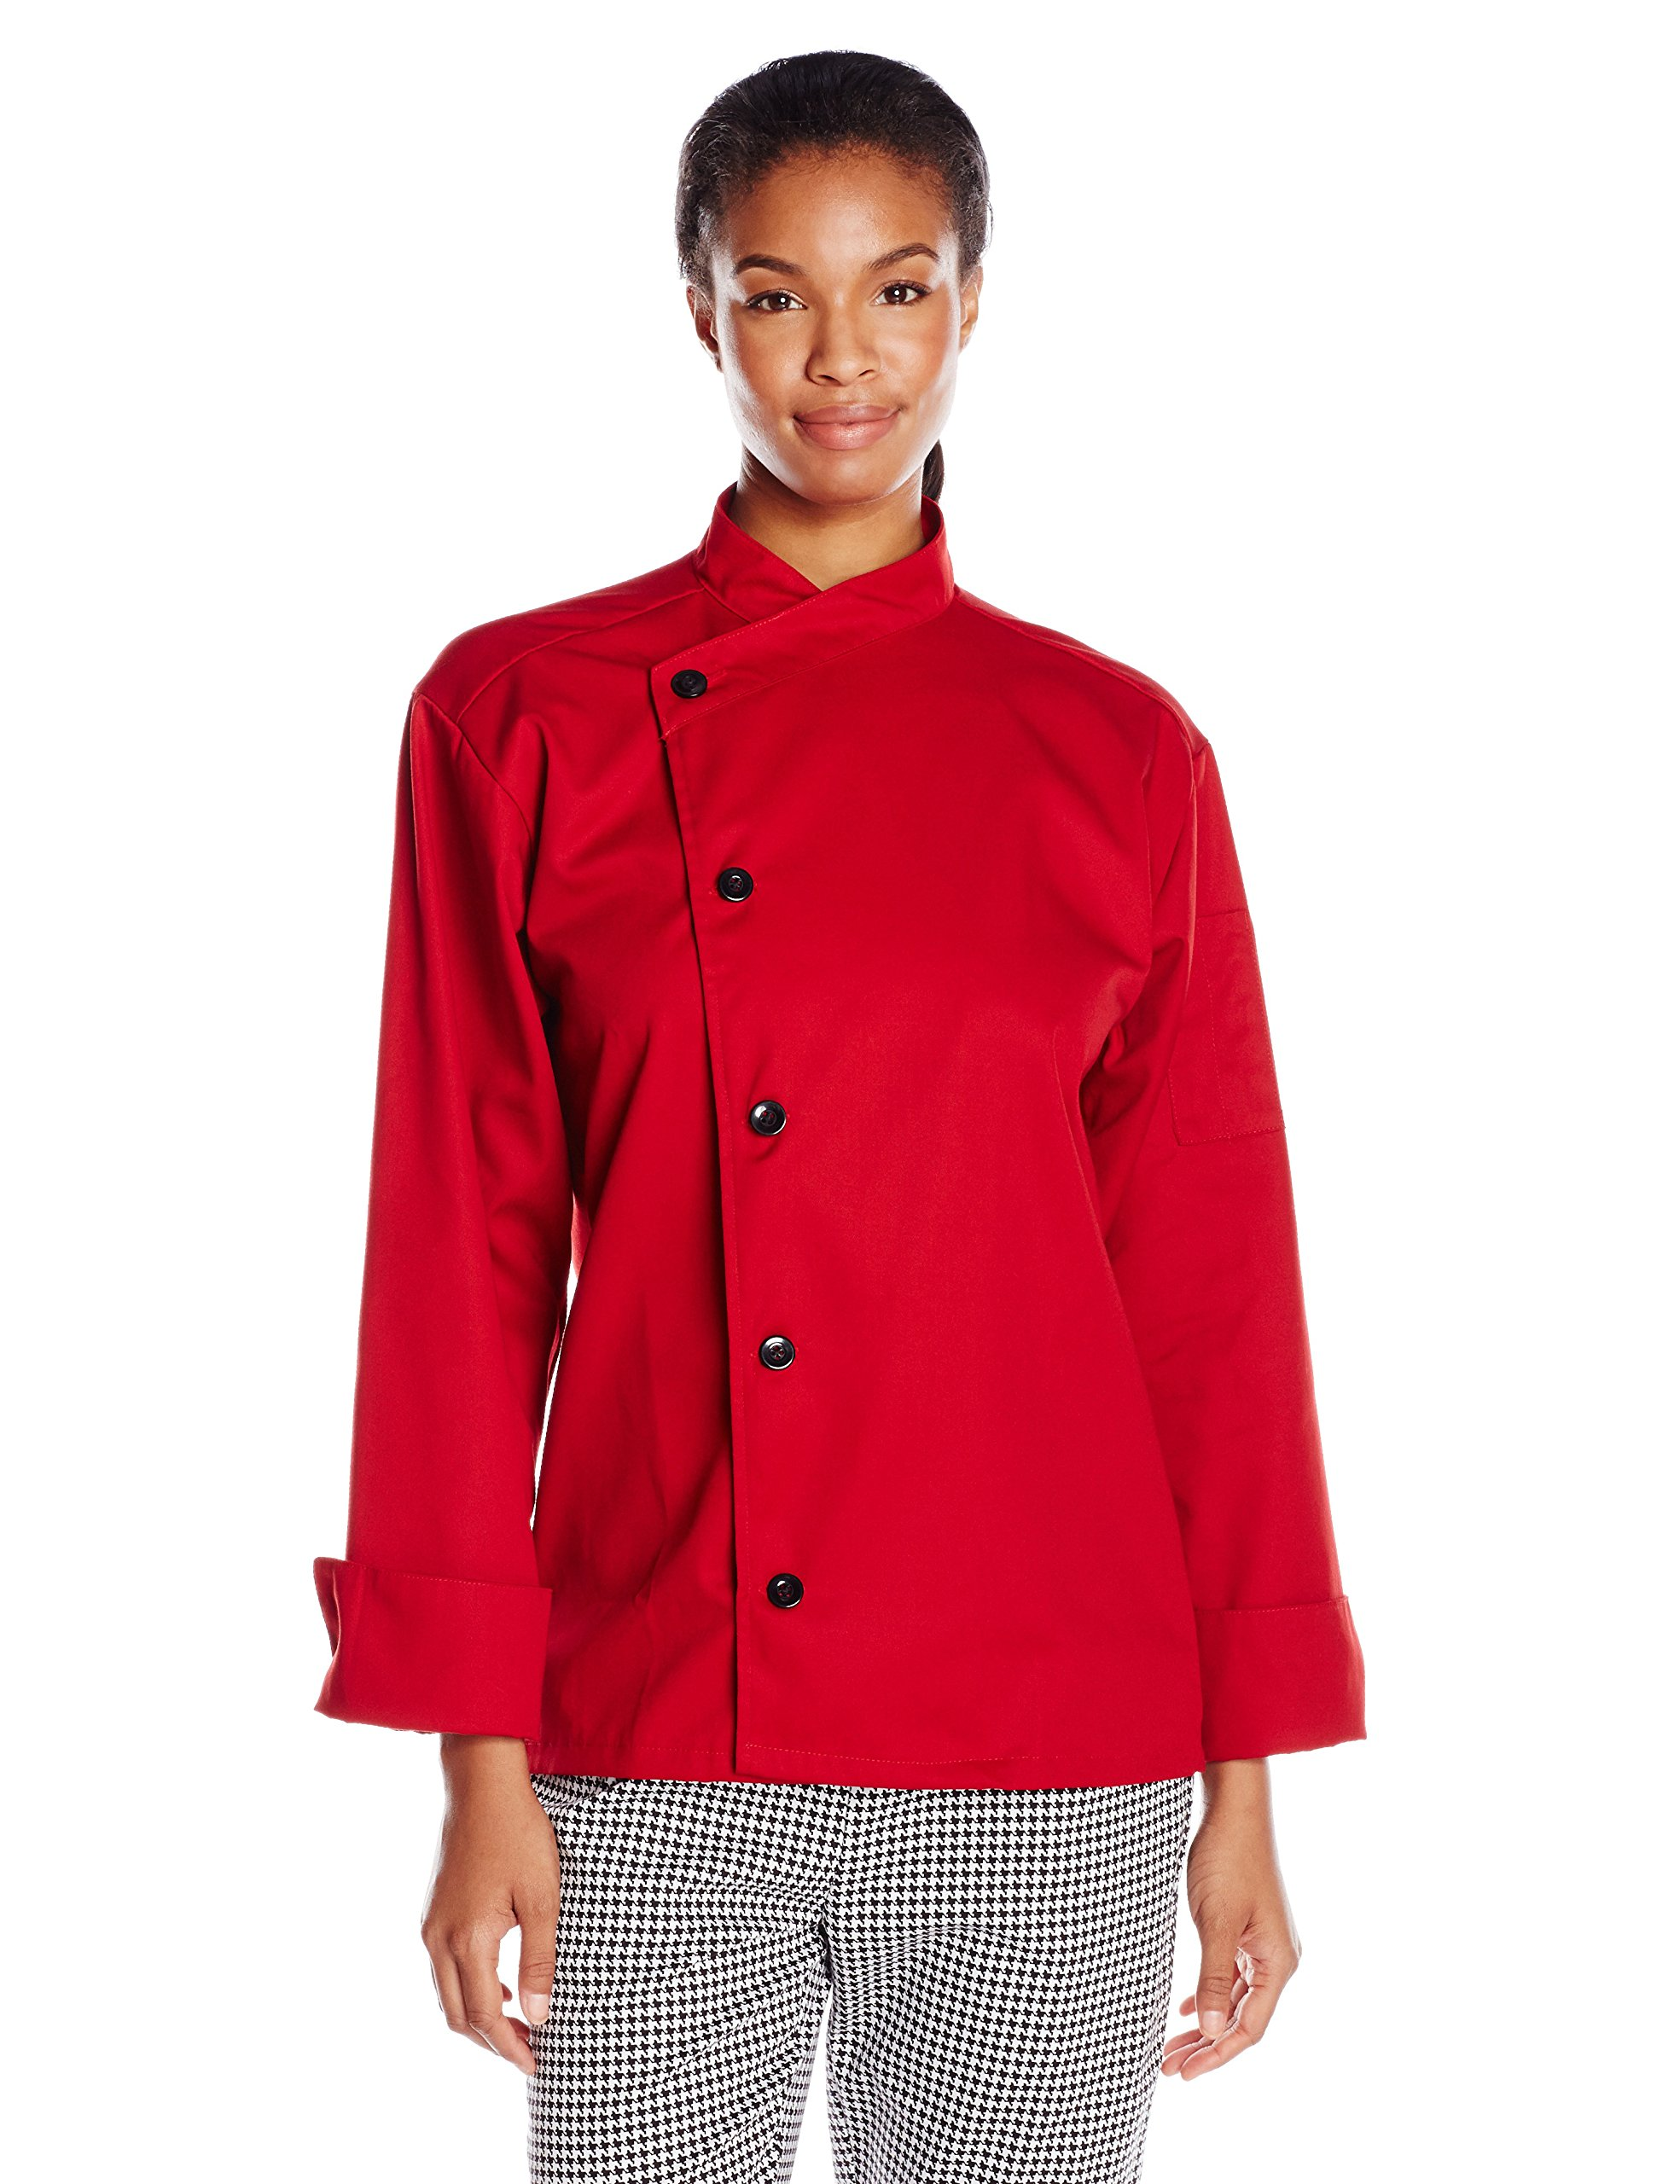 Uncommon Threads Unisex Rio Chef Coat, Red, Small